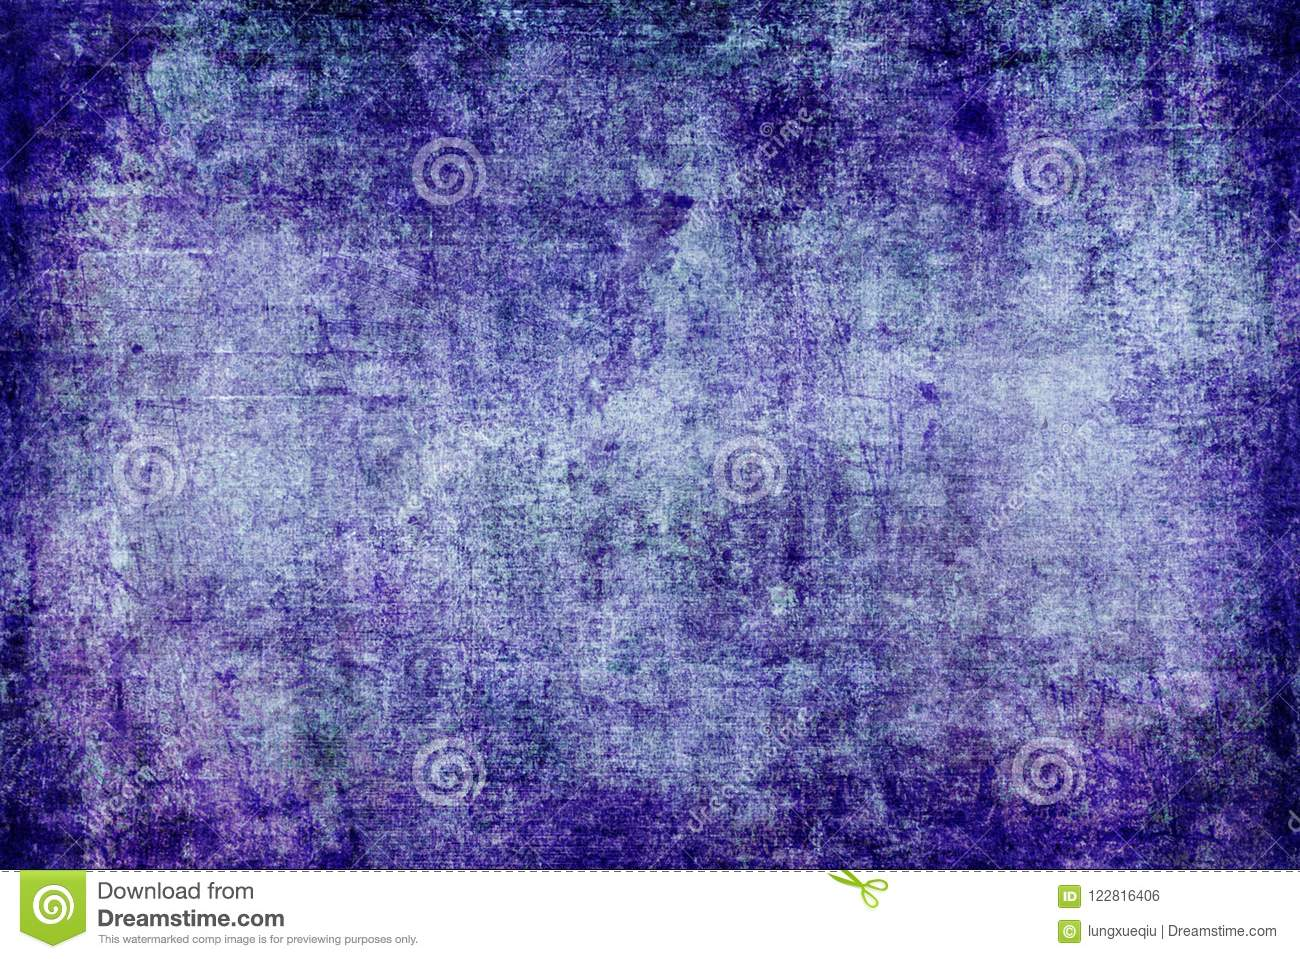 Grunge Dark Blue Purple Violet Rusty Distorted Decay Old Abstract